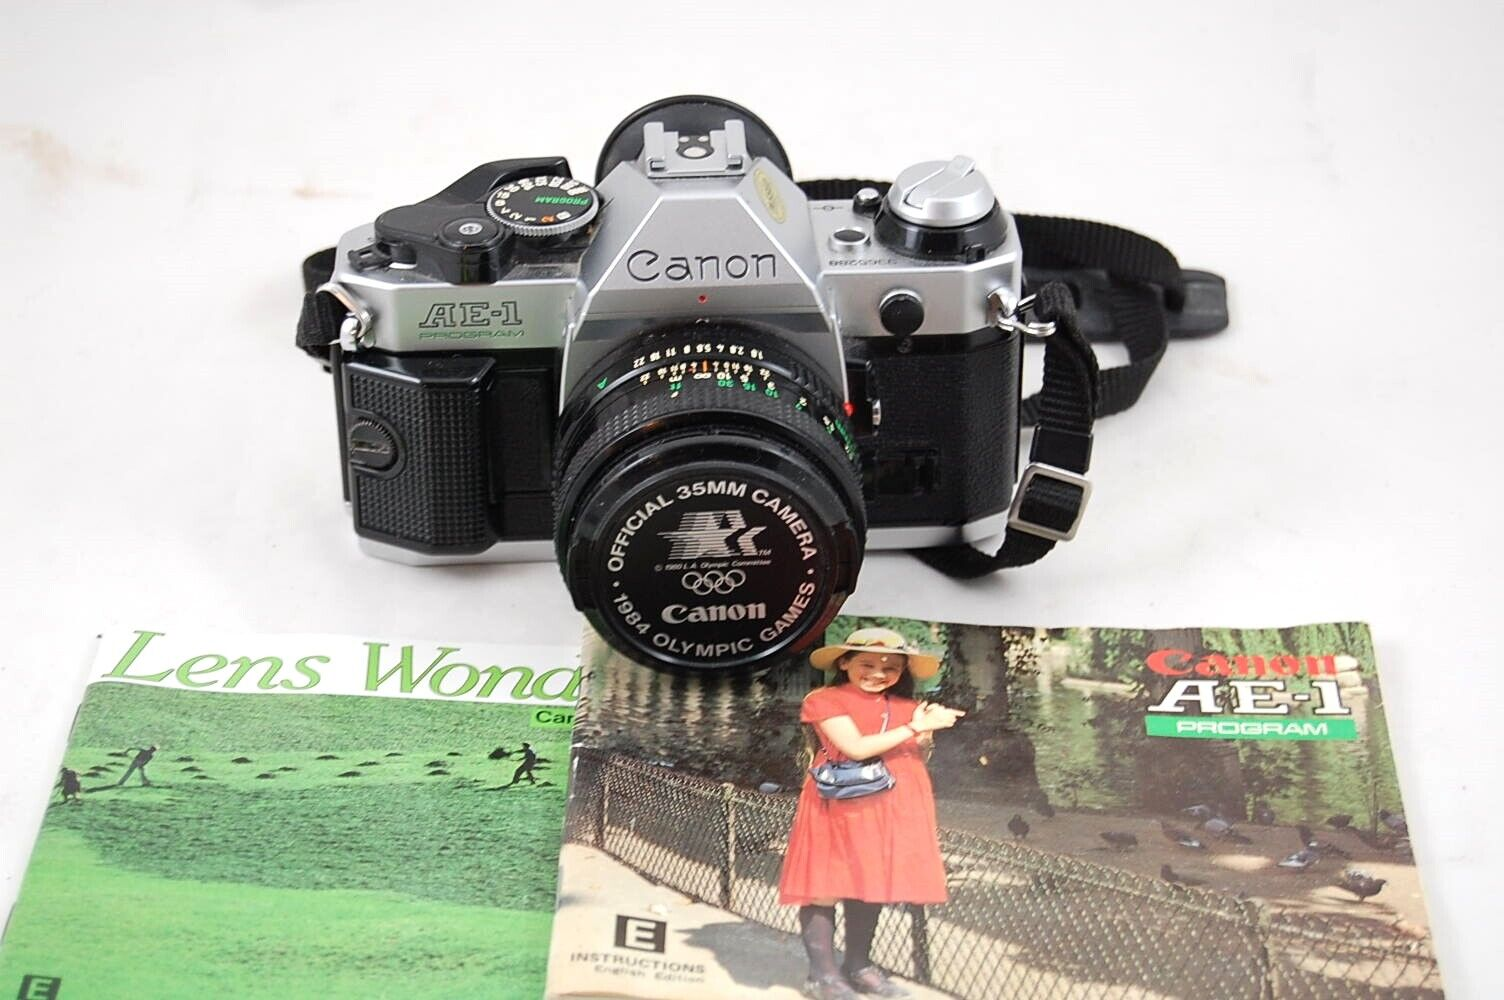 Canon AE-1 Program Official 35mm Camera 1984 Olympic Games With FD 50mm 1.8 Lens - $150.00